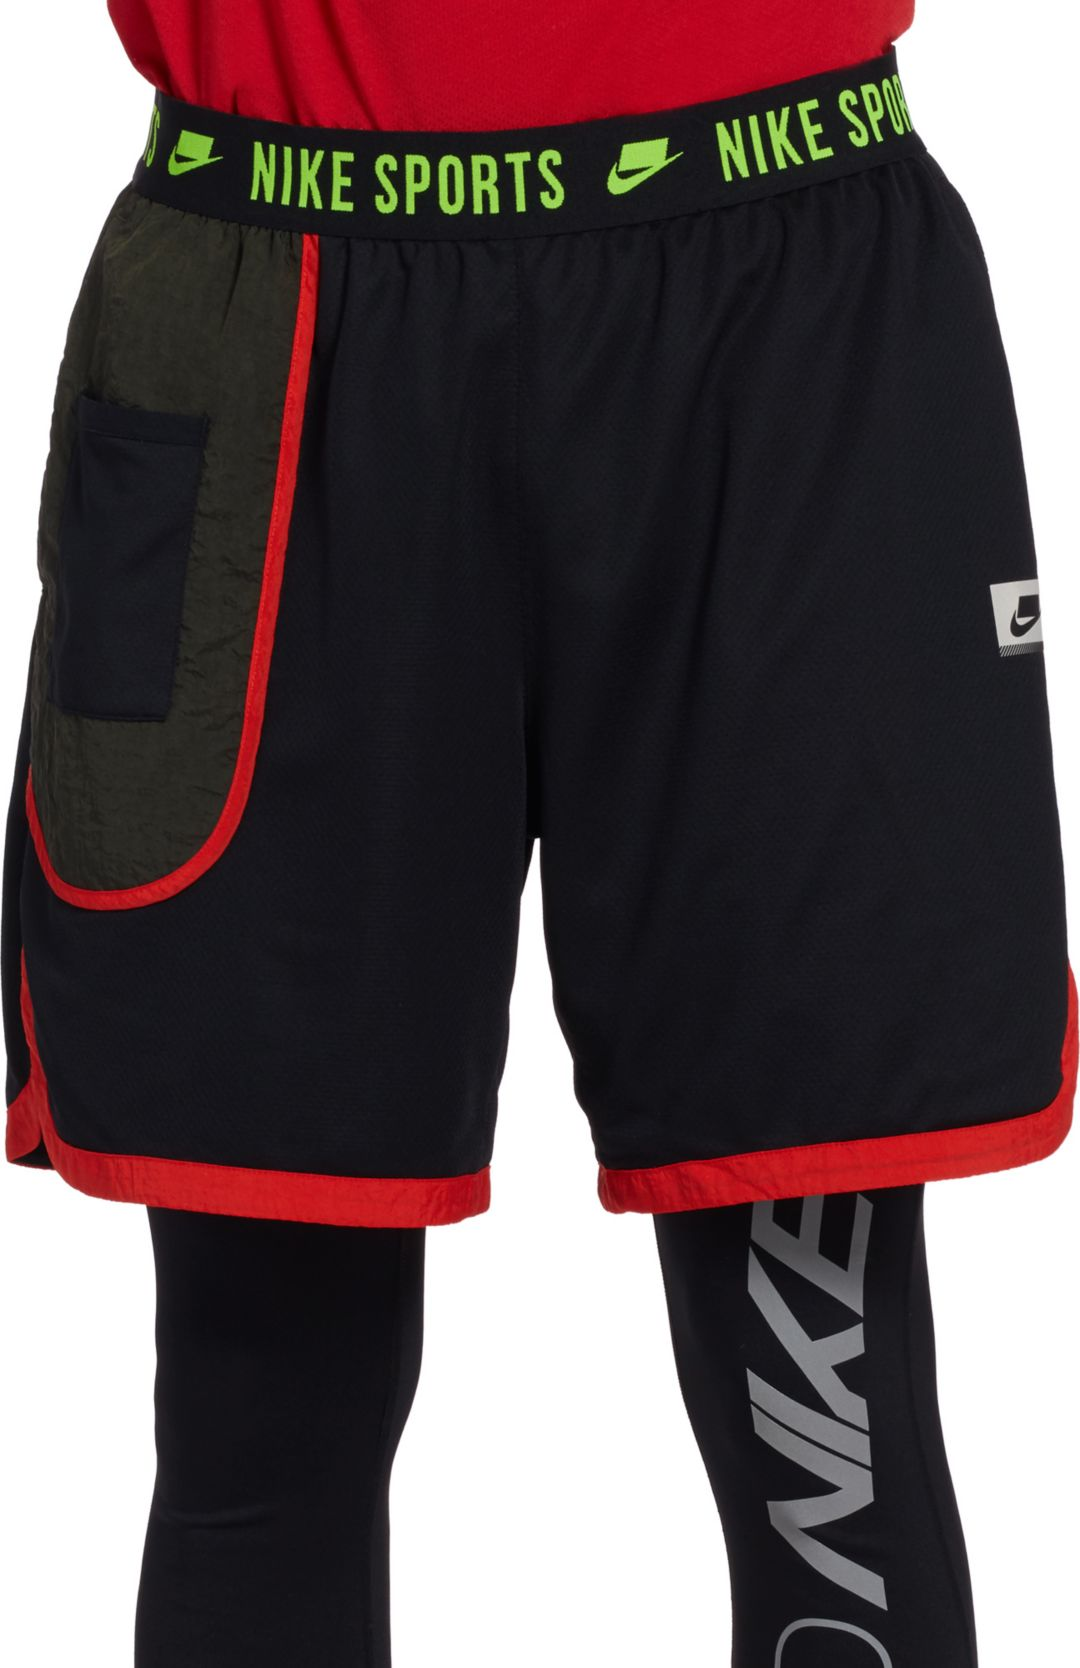 321967ad Nike Men's Dri-FIT Training Shorts